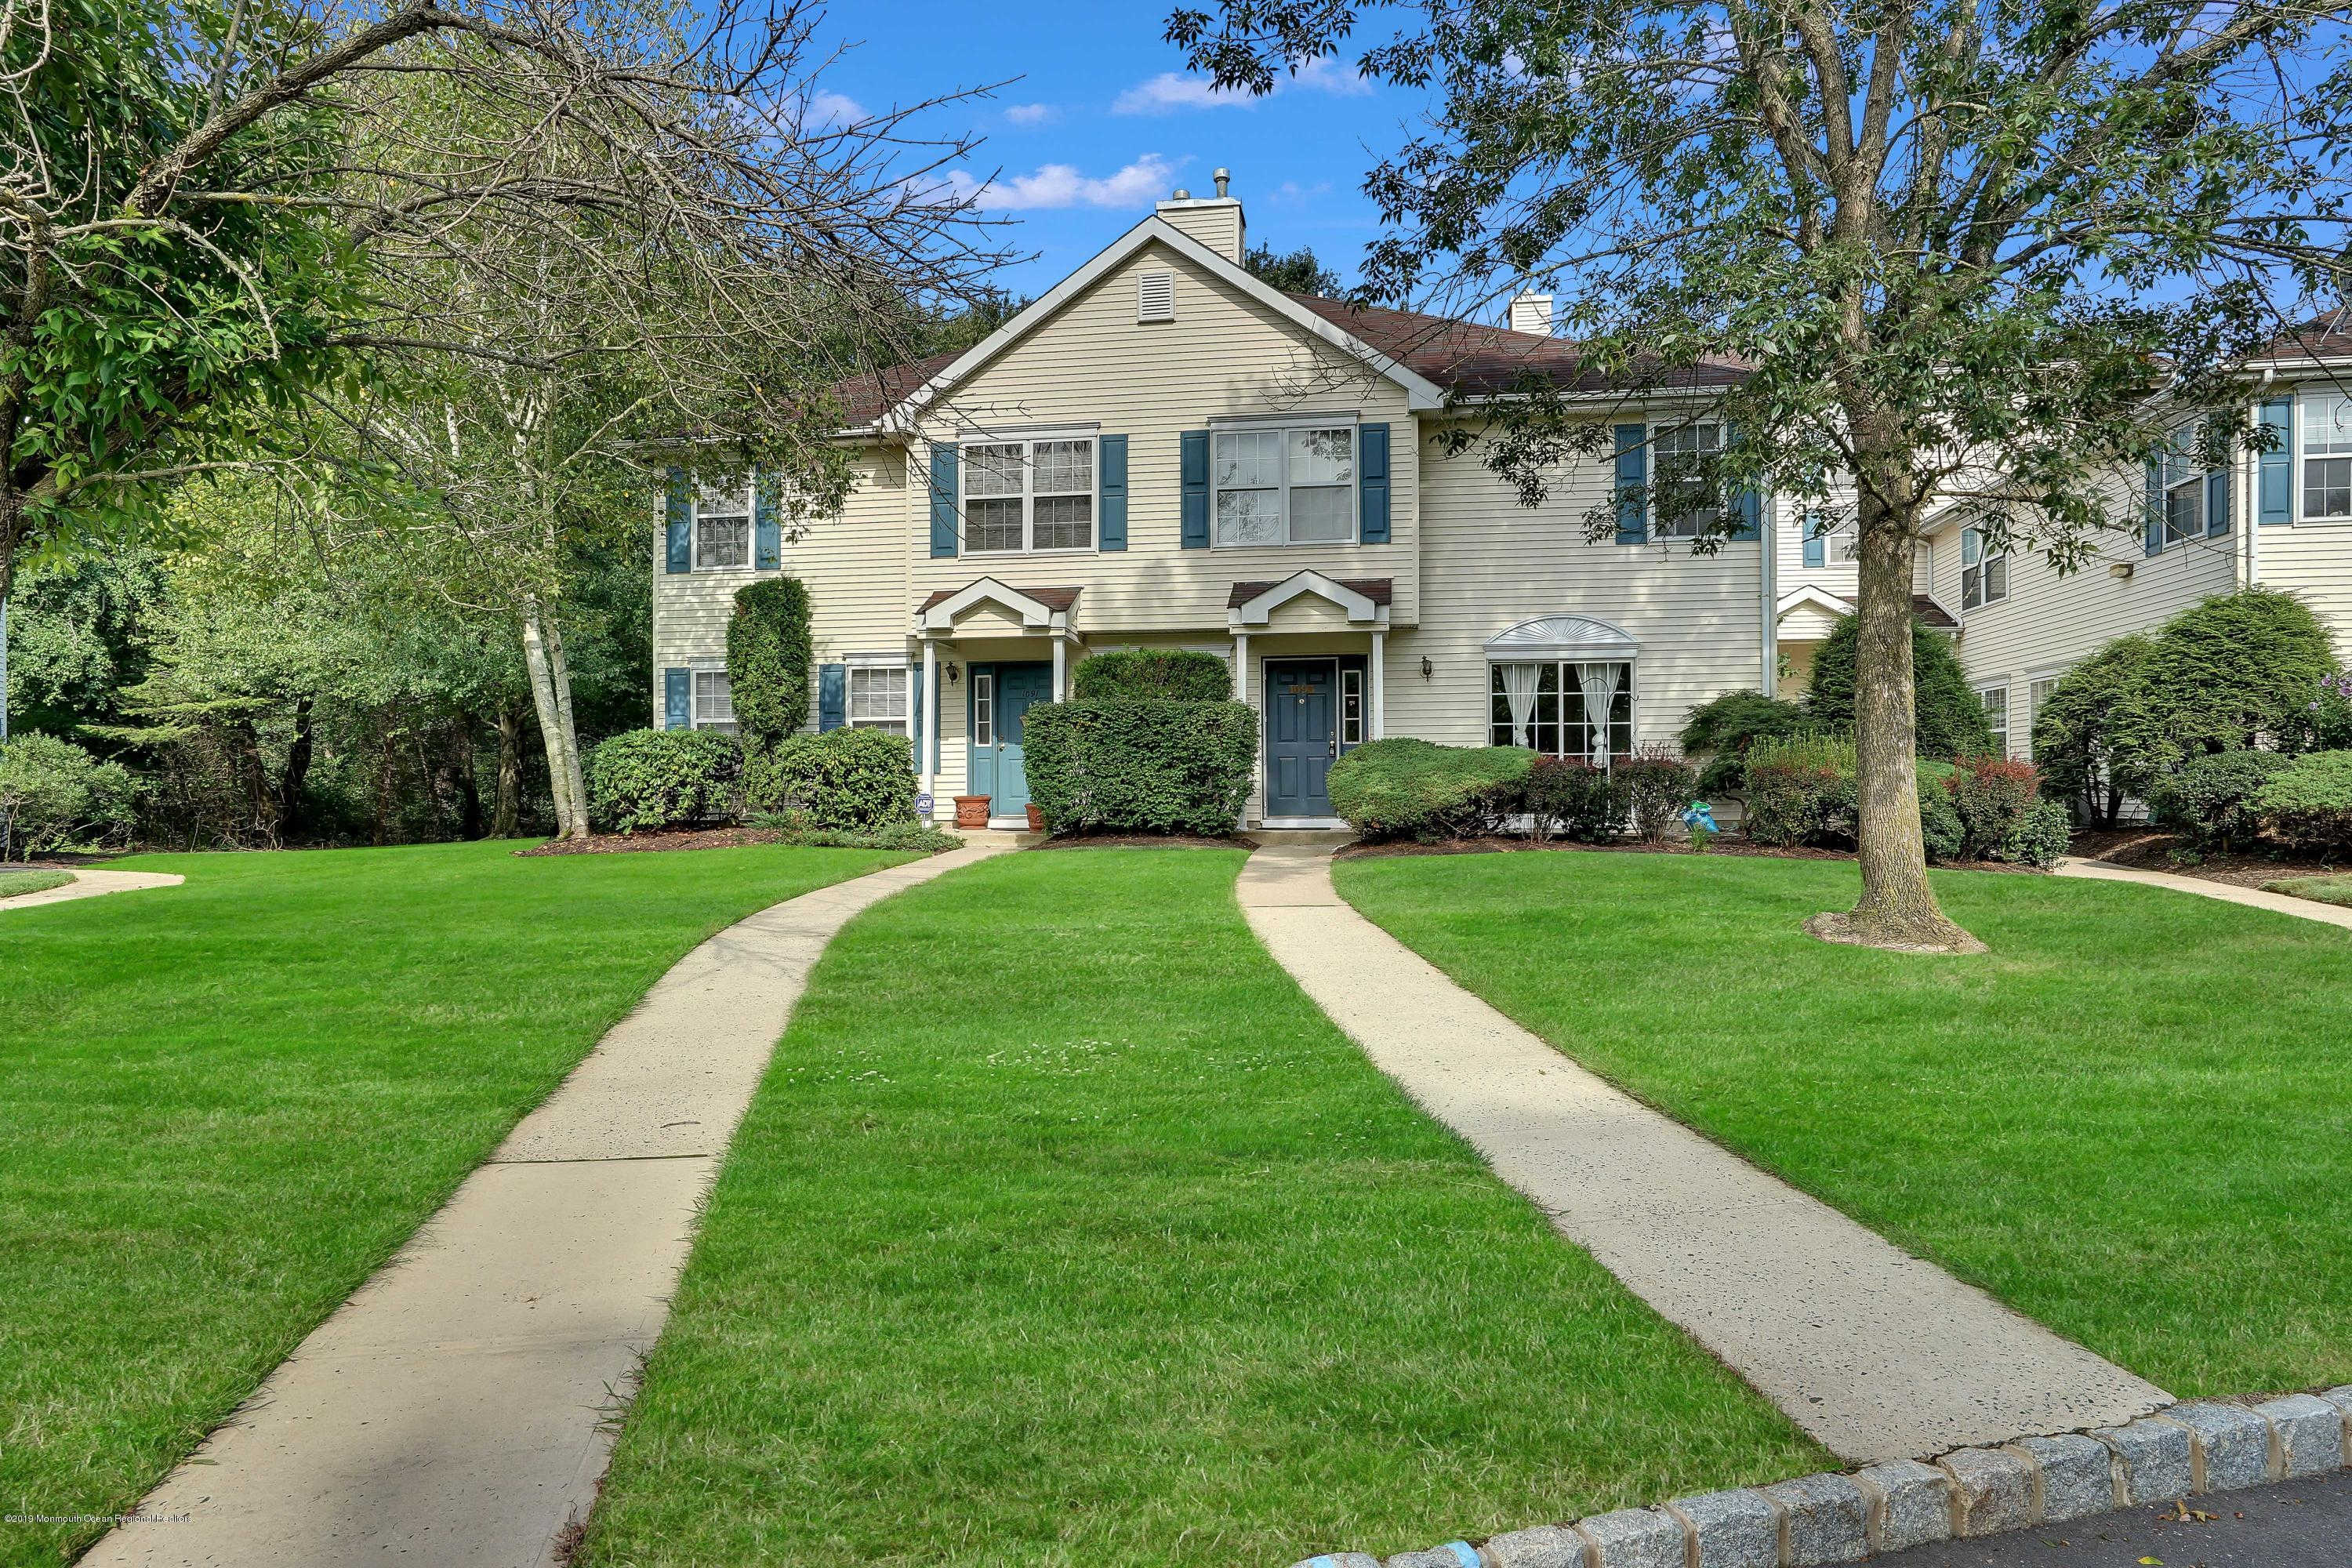 1089 Roseberry Court, Morganville, NJ 07751 now has a new price of $289,000!